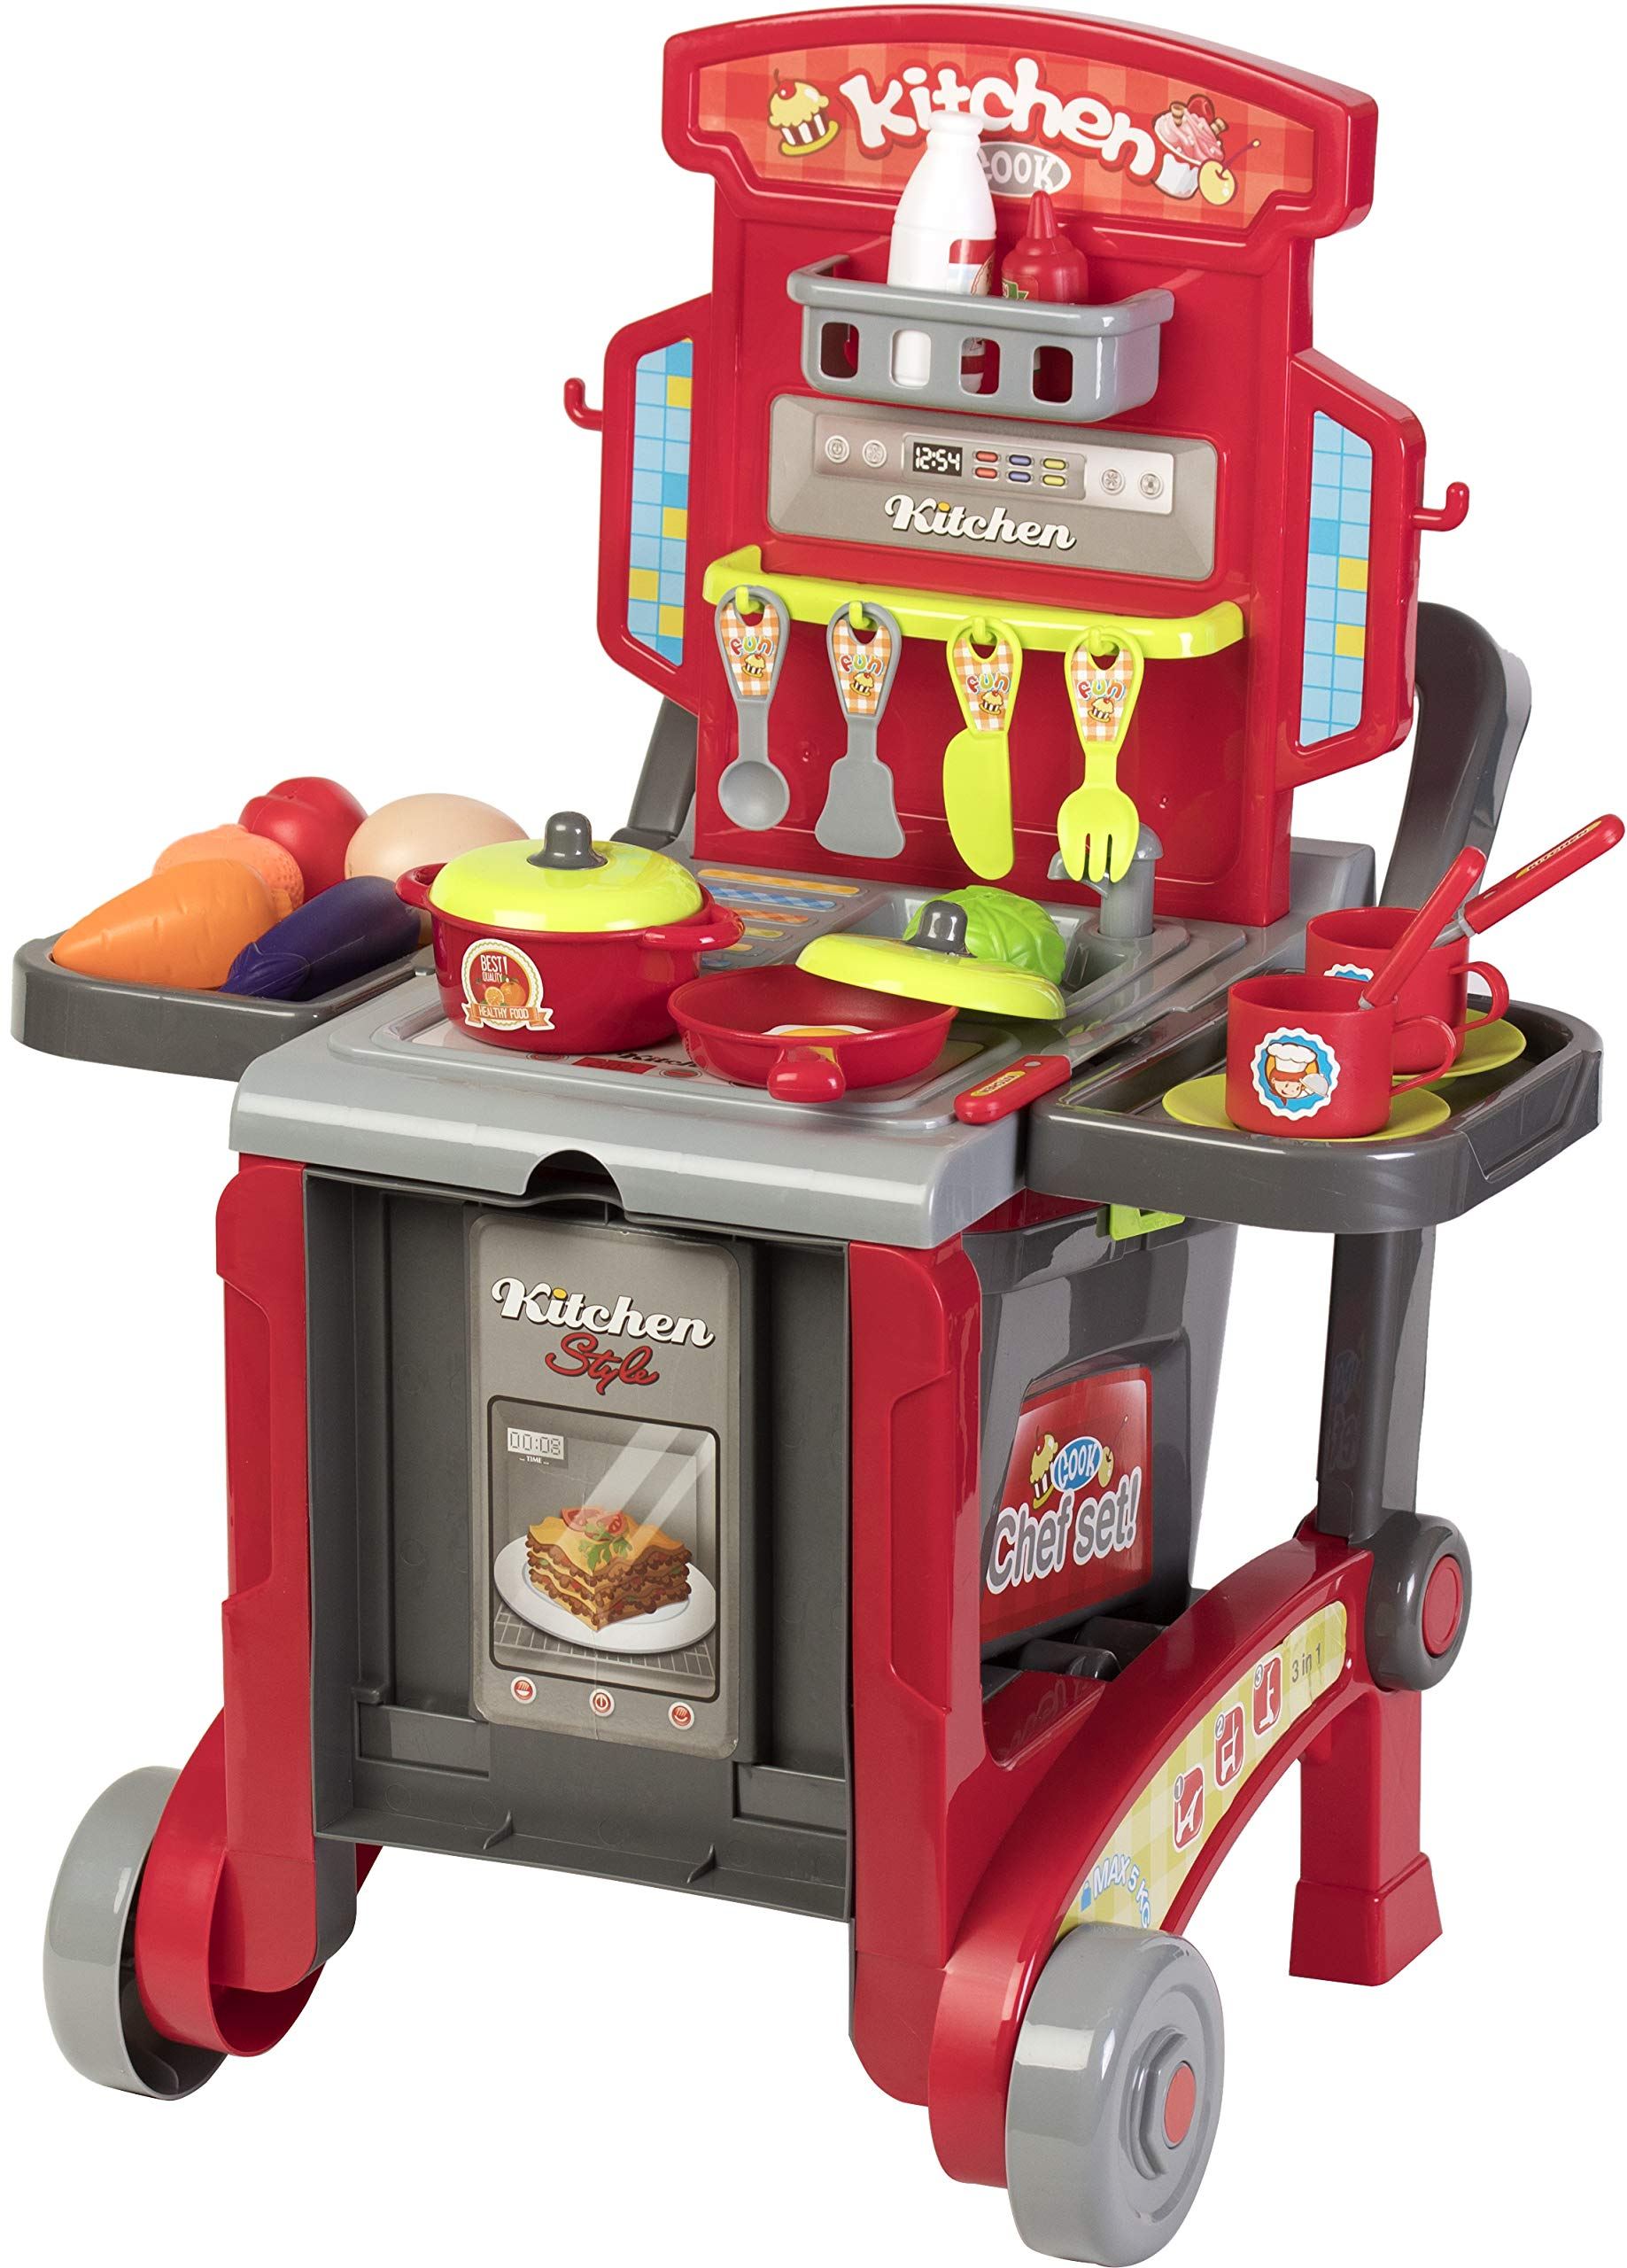 Kitchen Cook Grill Boys Playset Oven Stove, Vegetables, Pots & Pans, Cups, Utensils w/ Compact Carry Case by Kitchen Cook (Image #4)